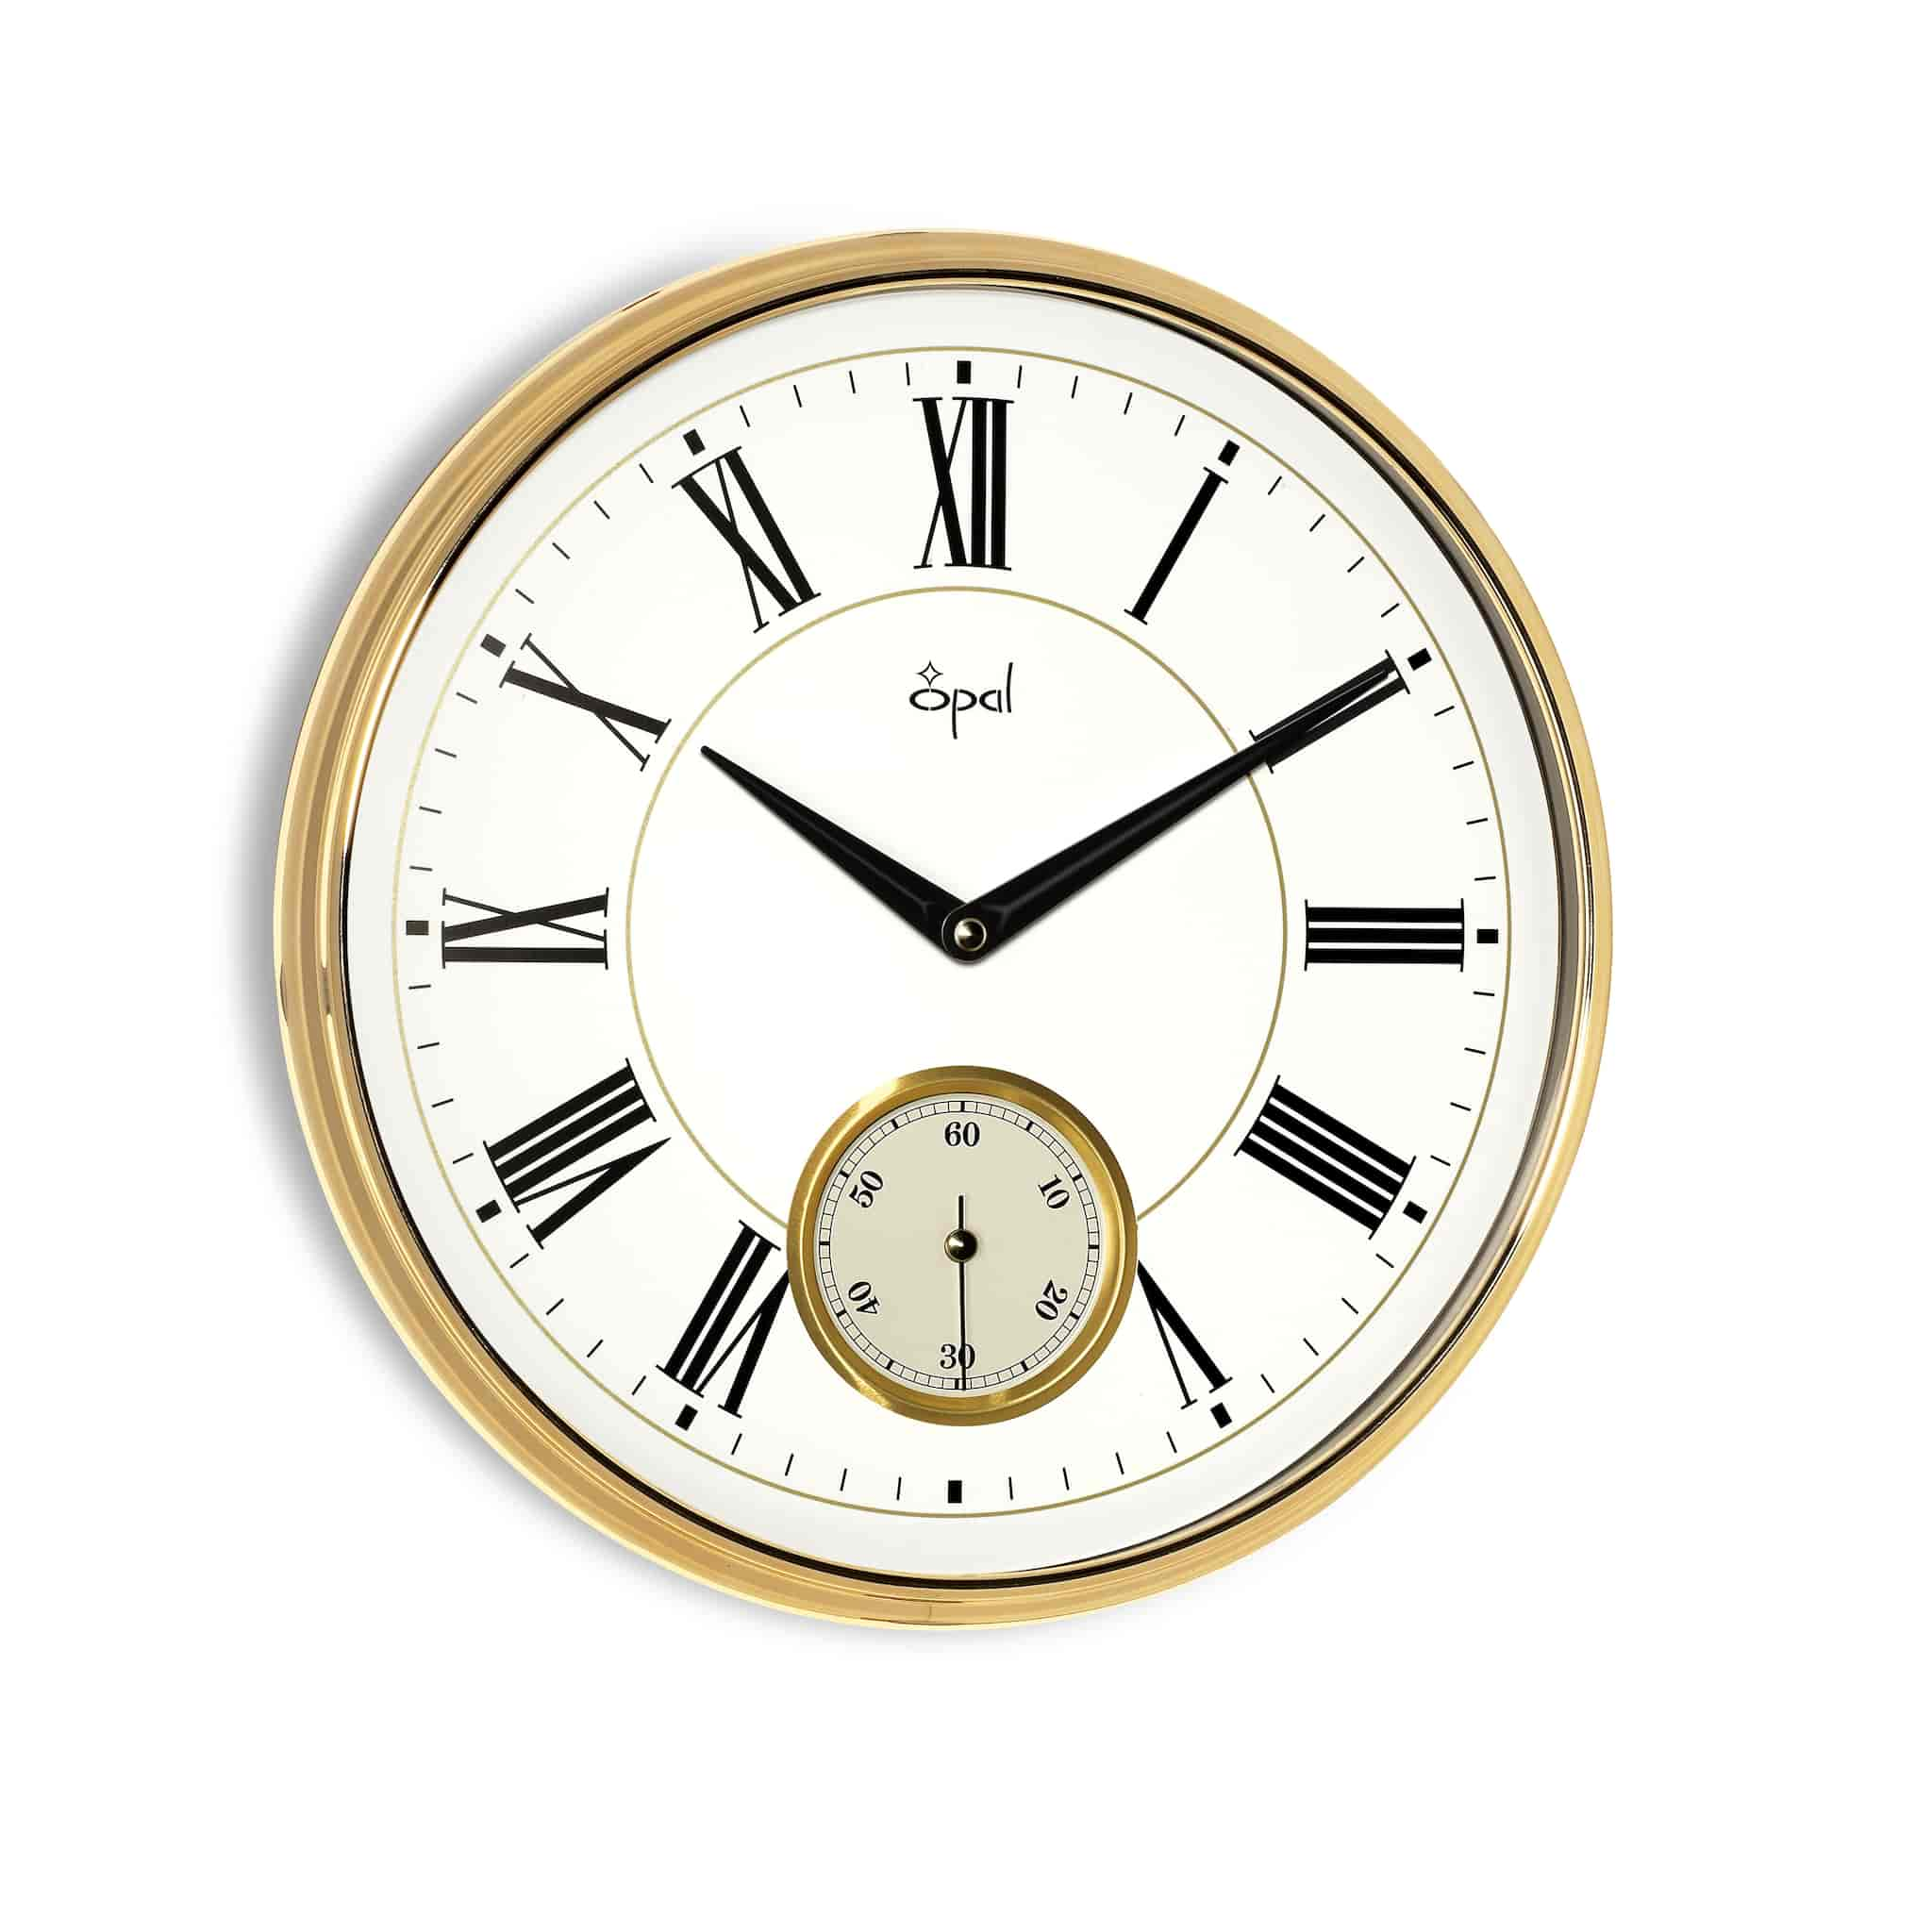 Buy opal panache wall clock 5436r features price reviews opal panache wall clock 5436r amipublicfo Choice Image